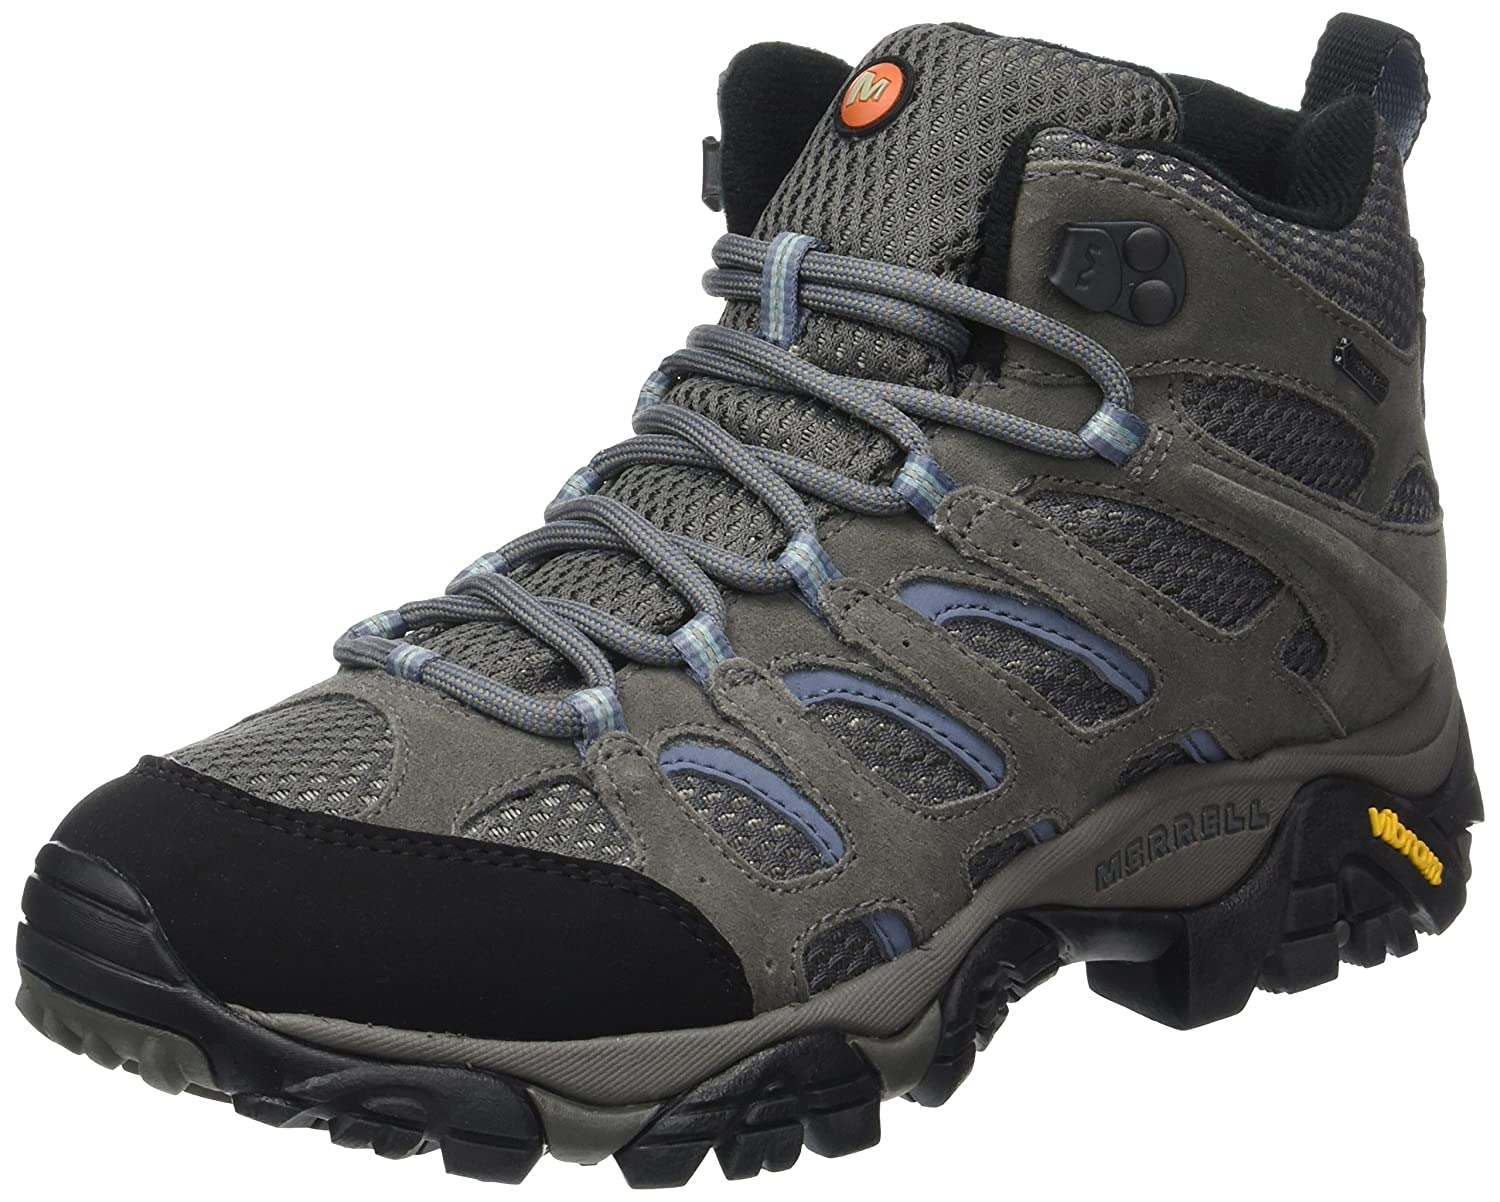 Merrell Women's Moab Mid Waterproof Gore-Tex Hiking Boot B000RJ2BN8 38.5|Grey